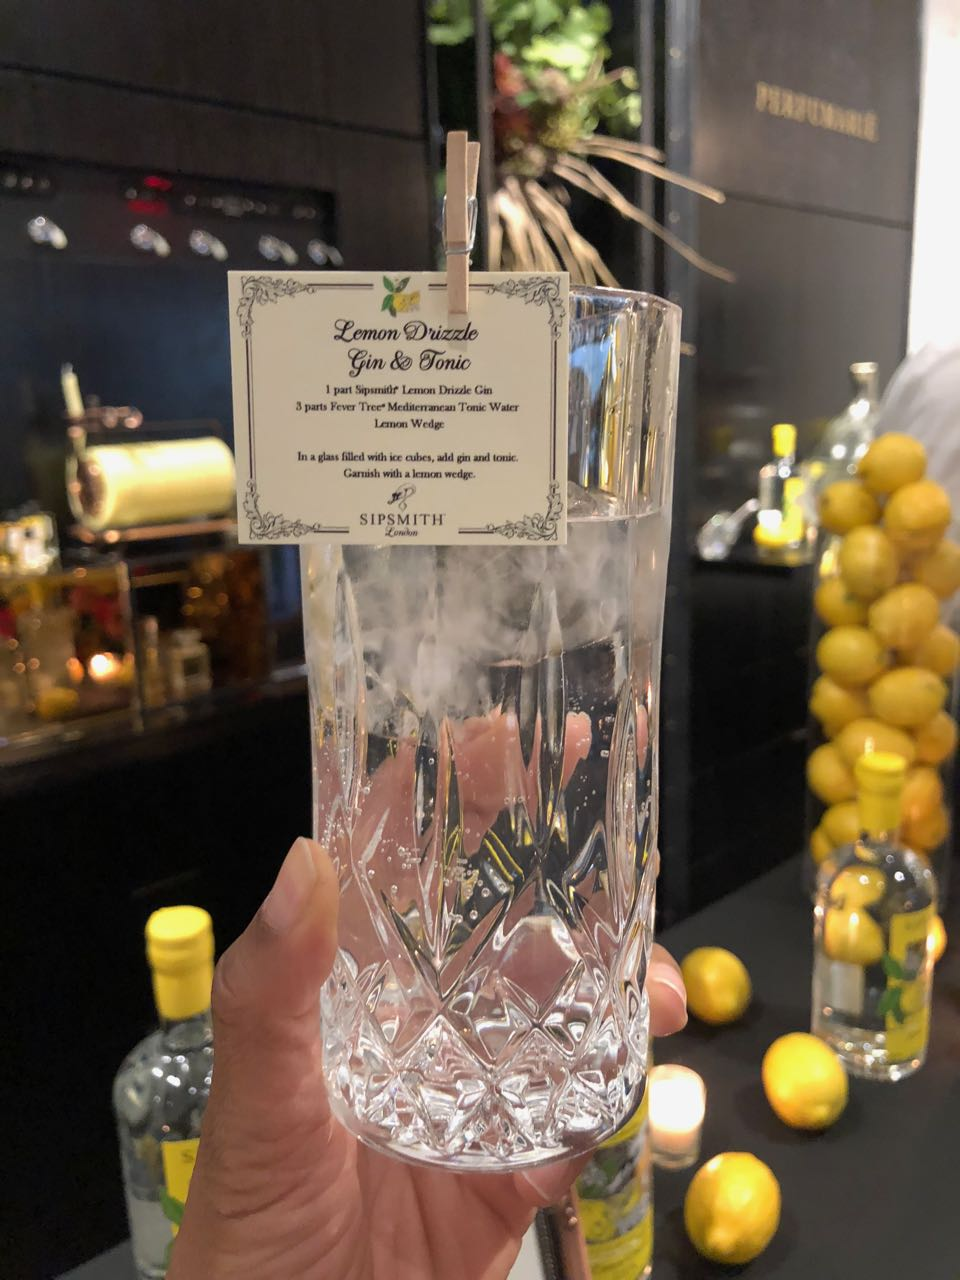 Sipsmith's Lemon Drizzle Gin Is The Latest It Drink To Get